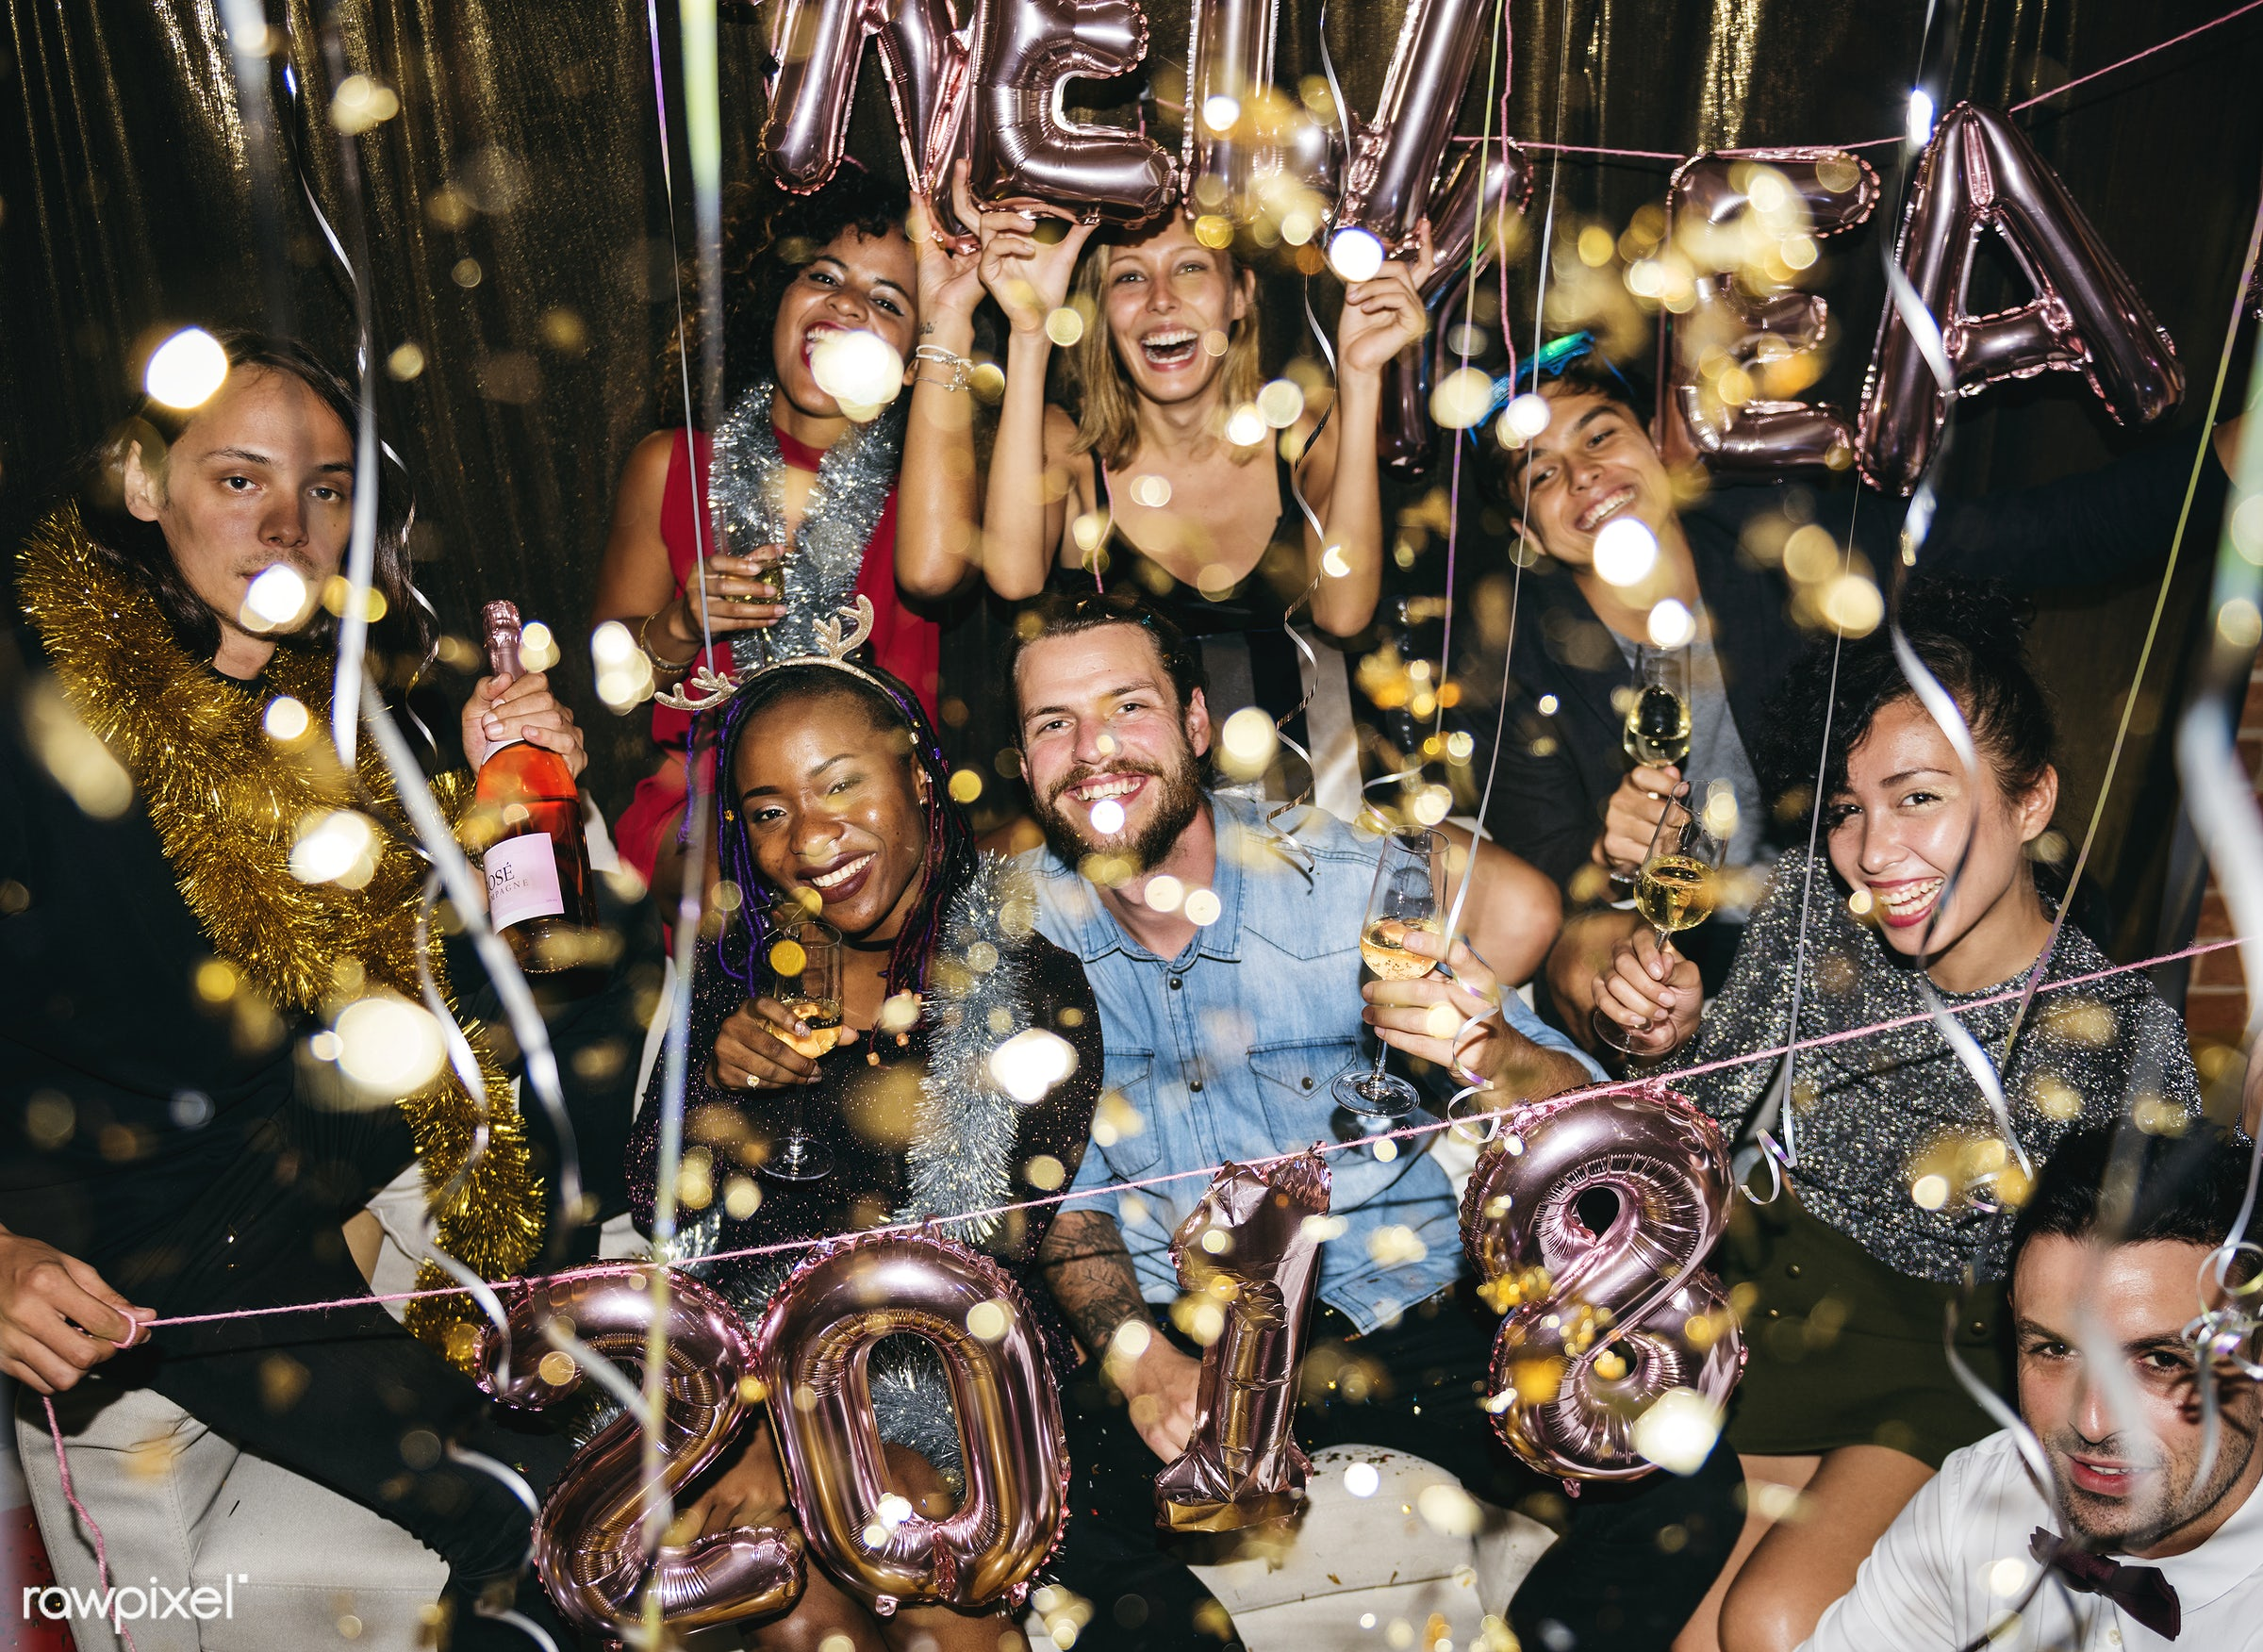 People enjoying a party with friends - new year, party, drunk, 2018, african american, african descent, beverage, birthday,...